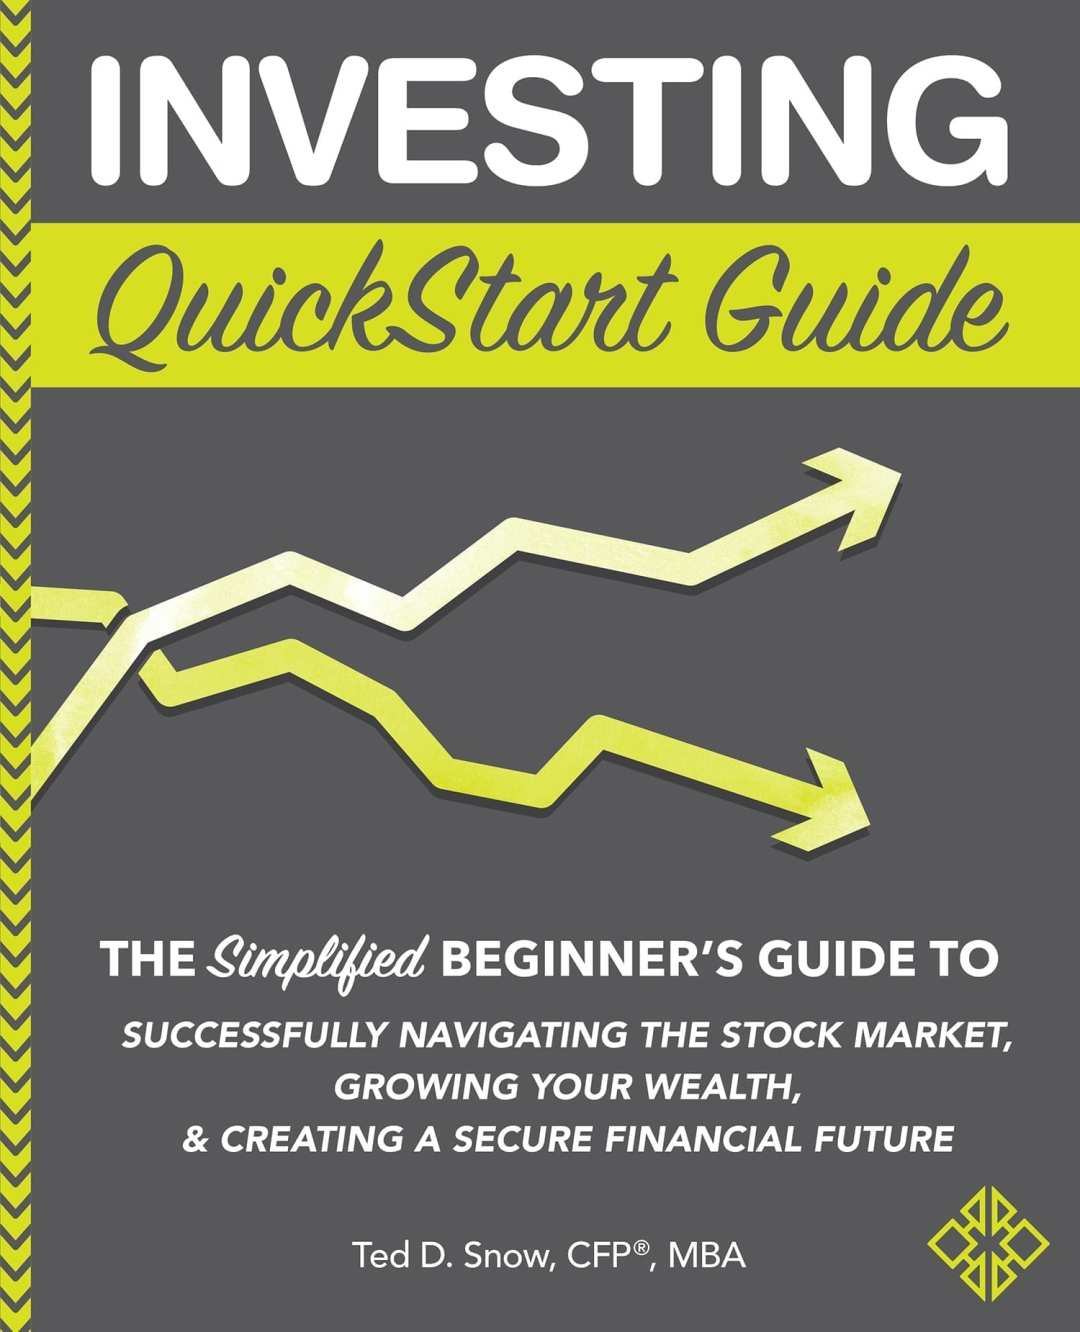 Access the complete media kit for the Investing QuickStart Guide here.